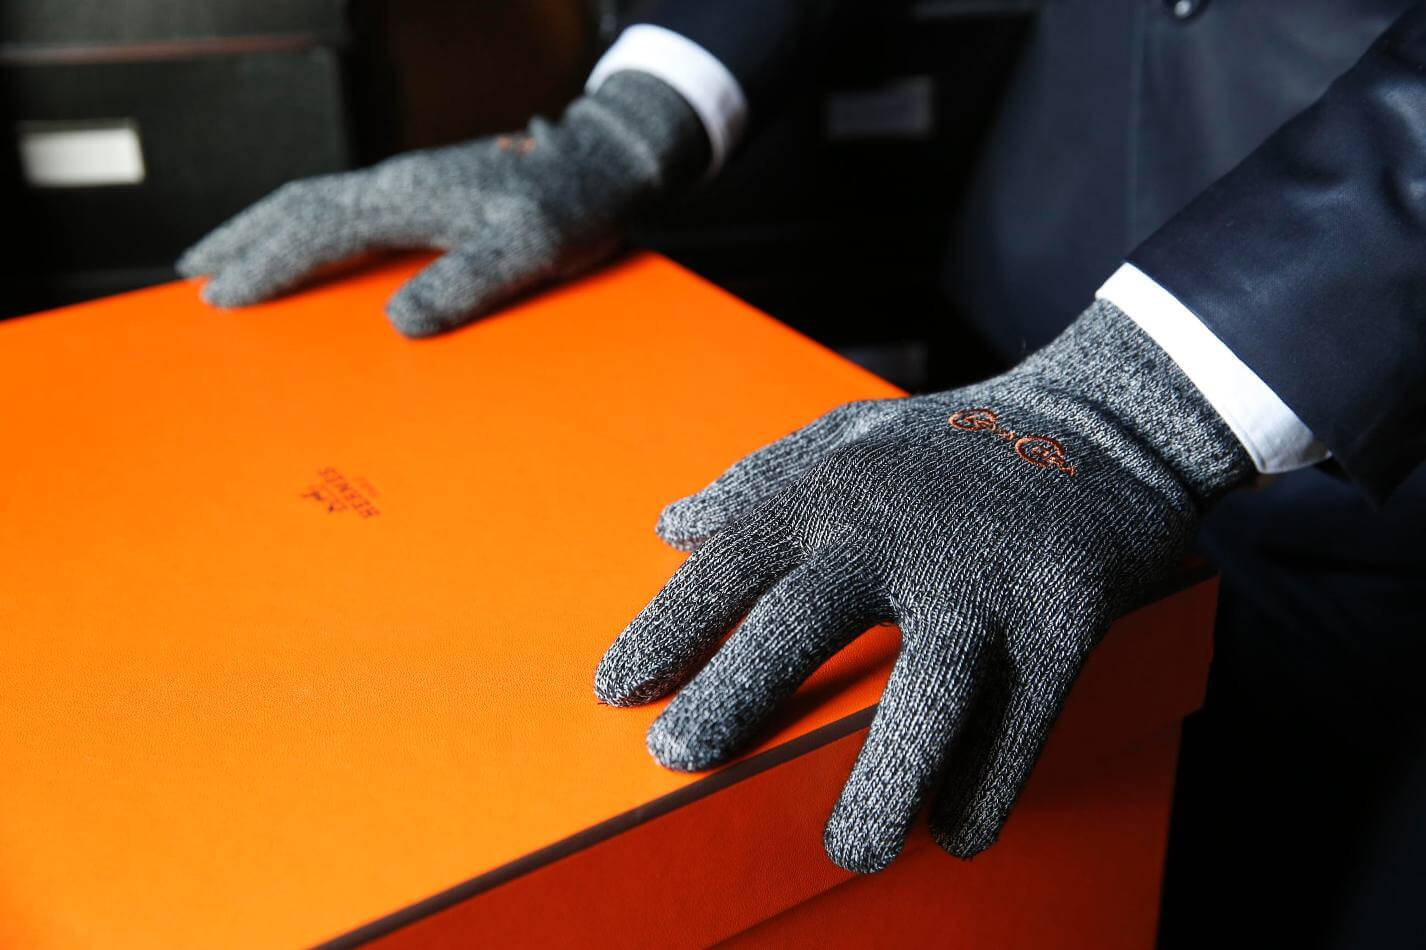 Opening hermes box with copper compression gloves